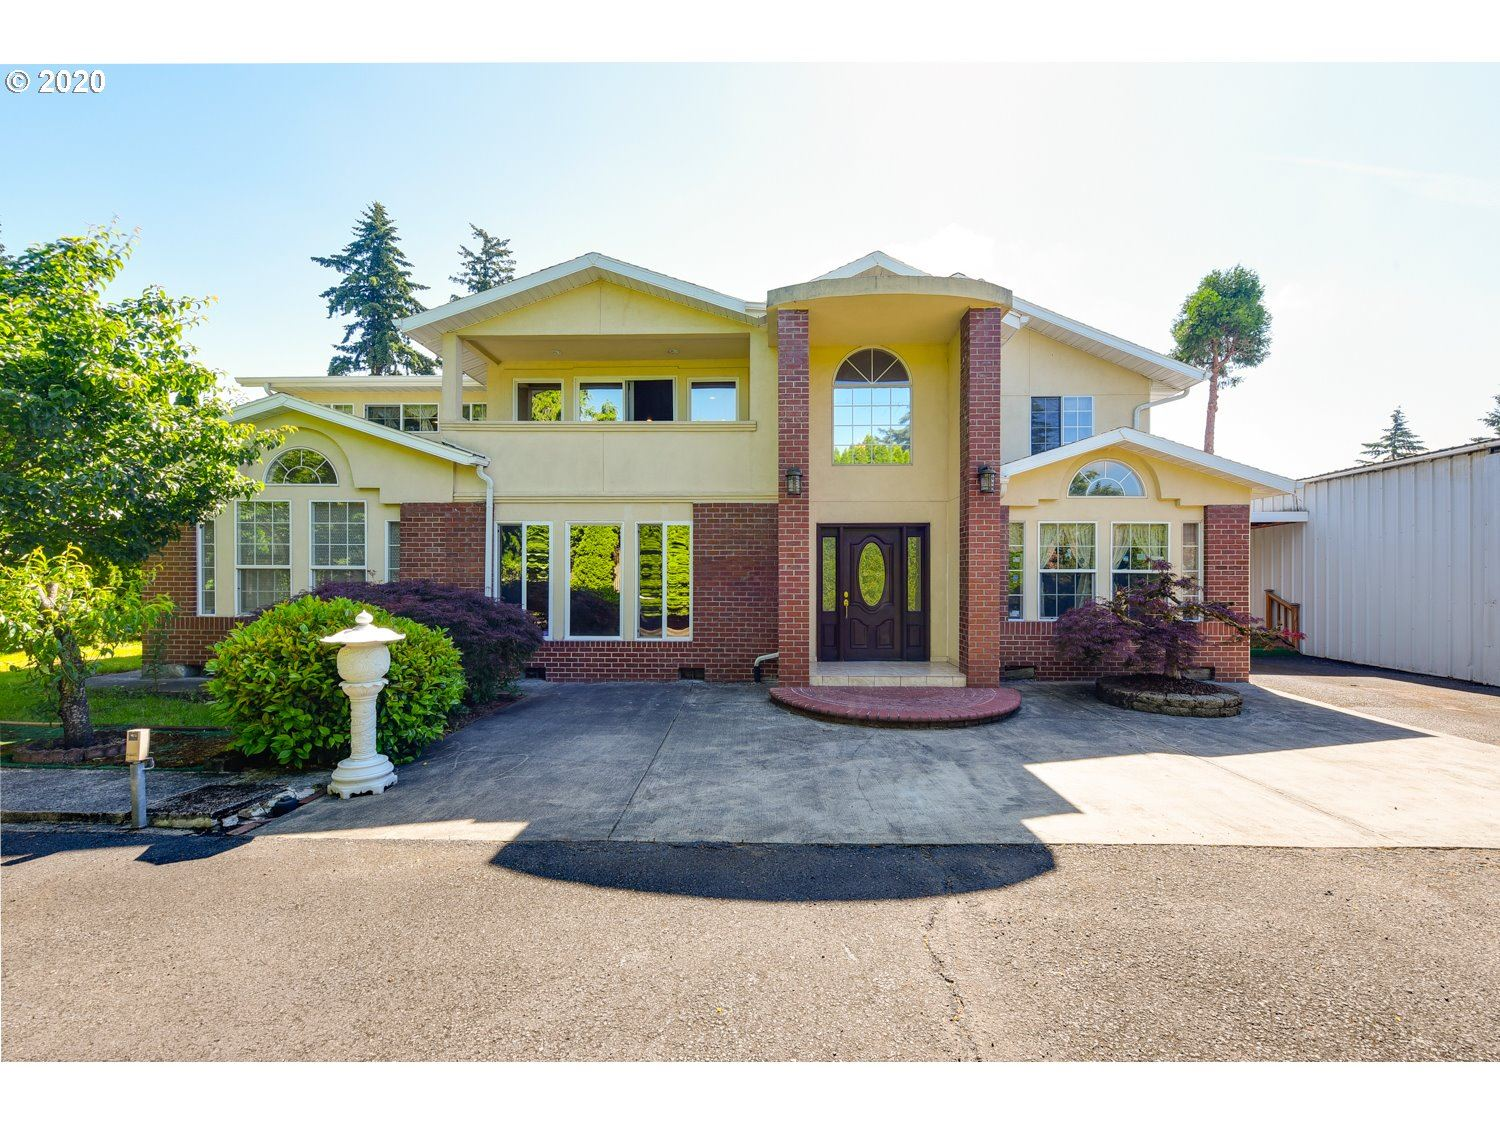 12818 SE MILL ST, Portland, OR 97233 - MLS#: 20431413